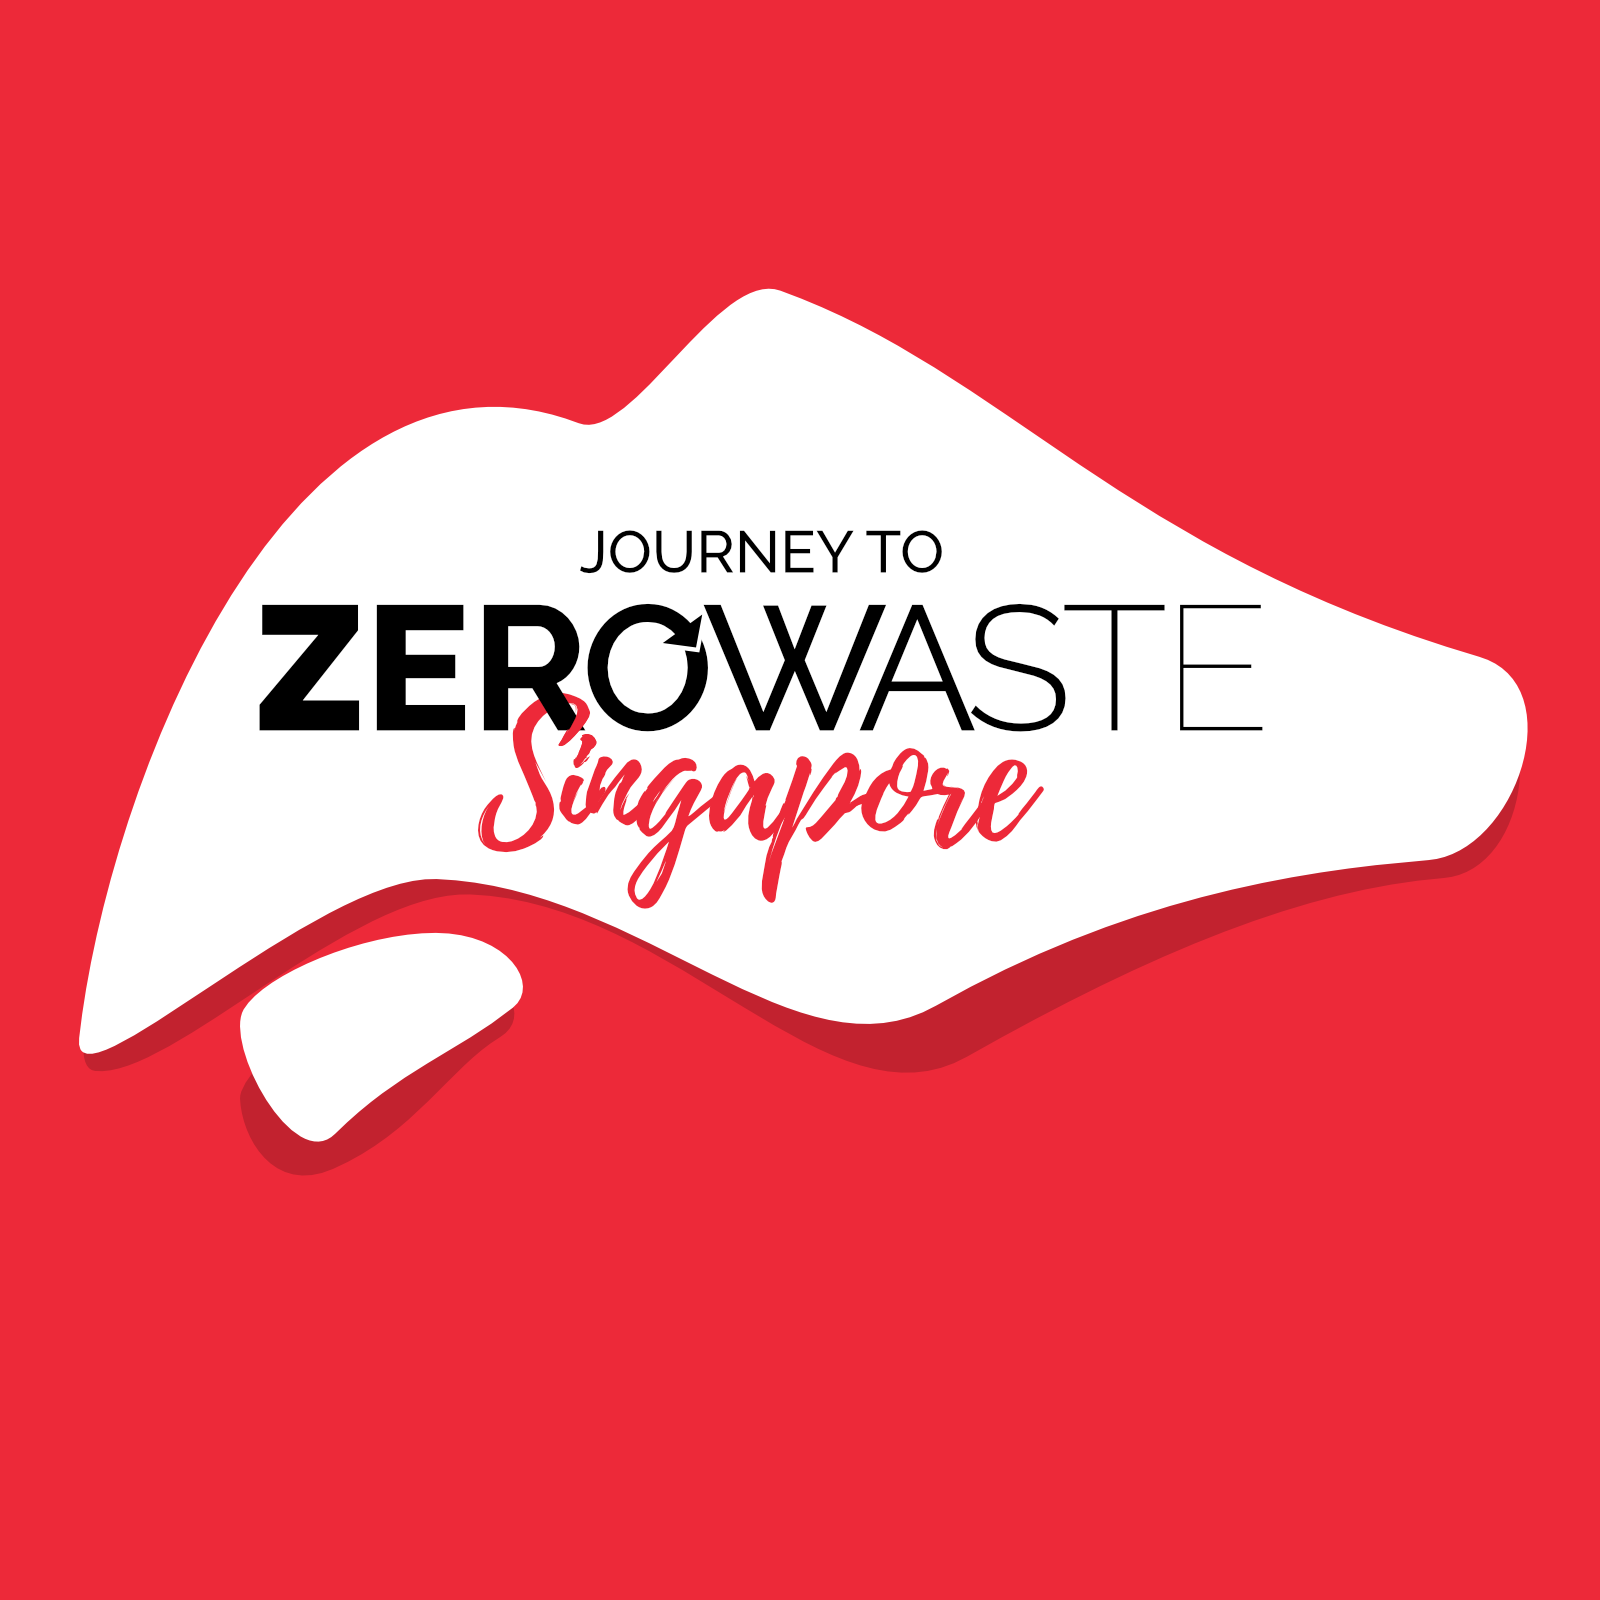 Journey to Zero Waste in Singapore